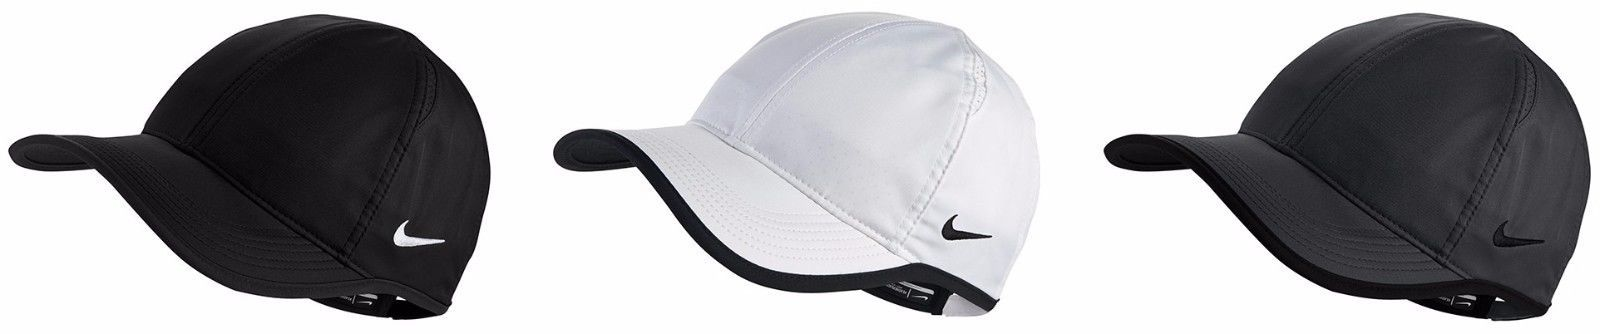 852ce3f4 New Nike Team Featherlight Cap Men's Hat and similar items. S l1600